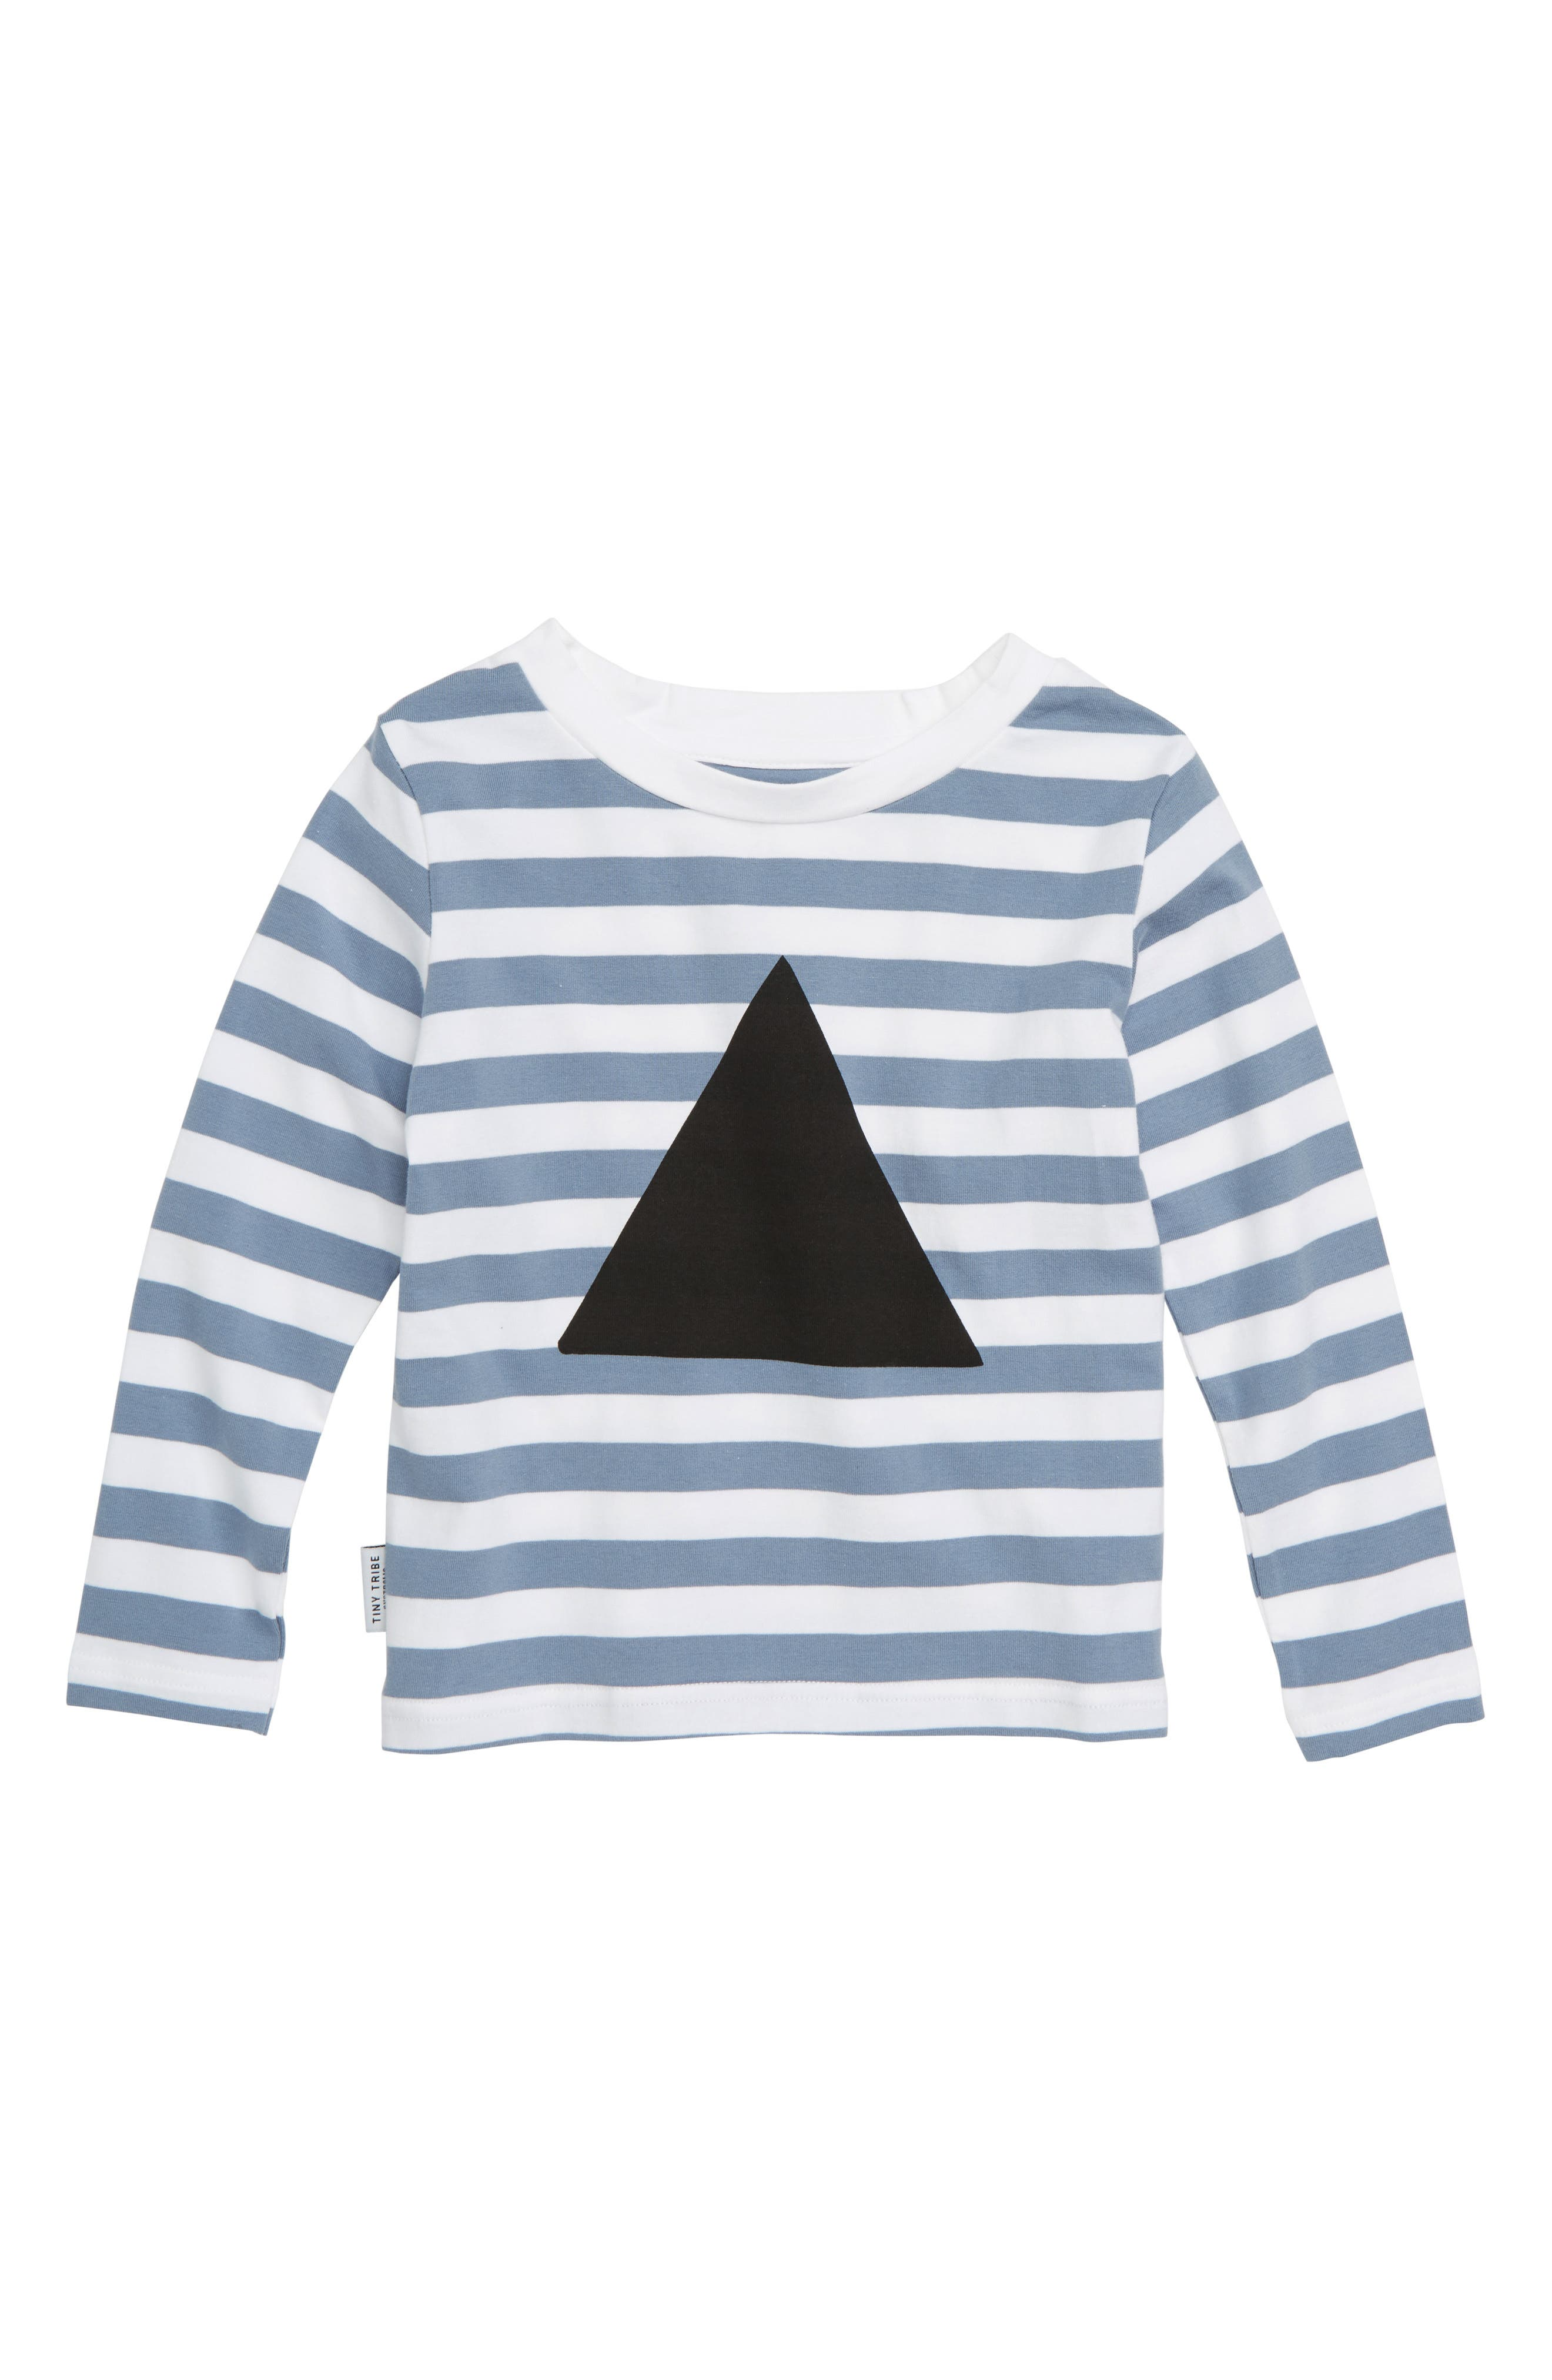 Triangle T-Shirt,                         Main,                         color, 400